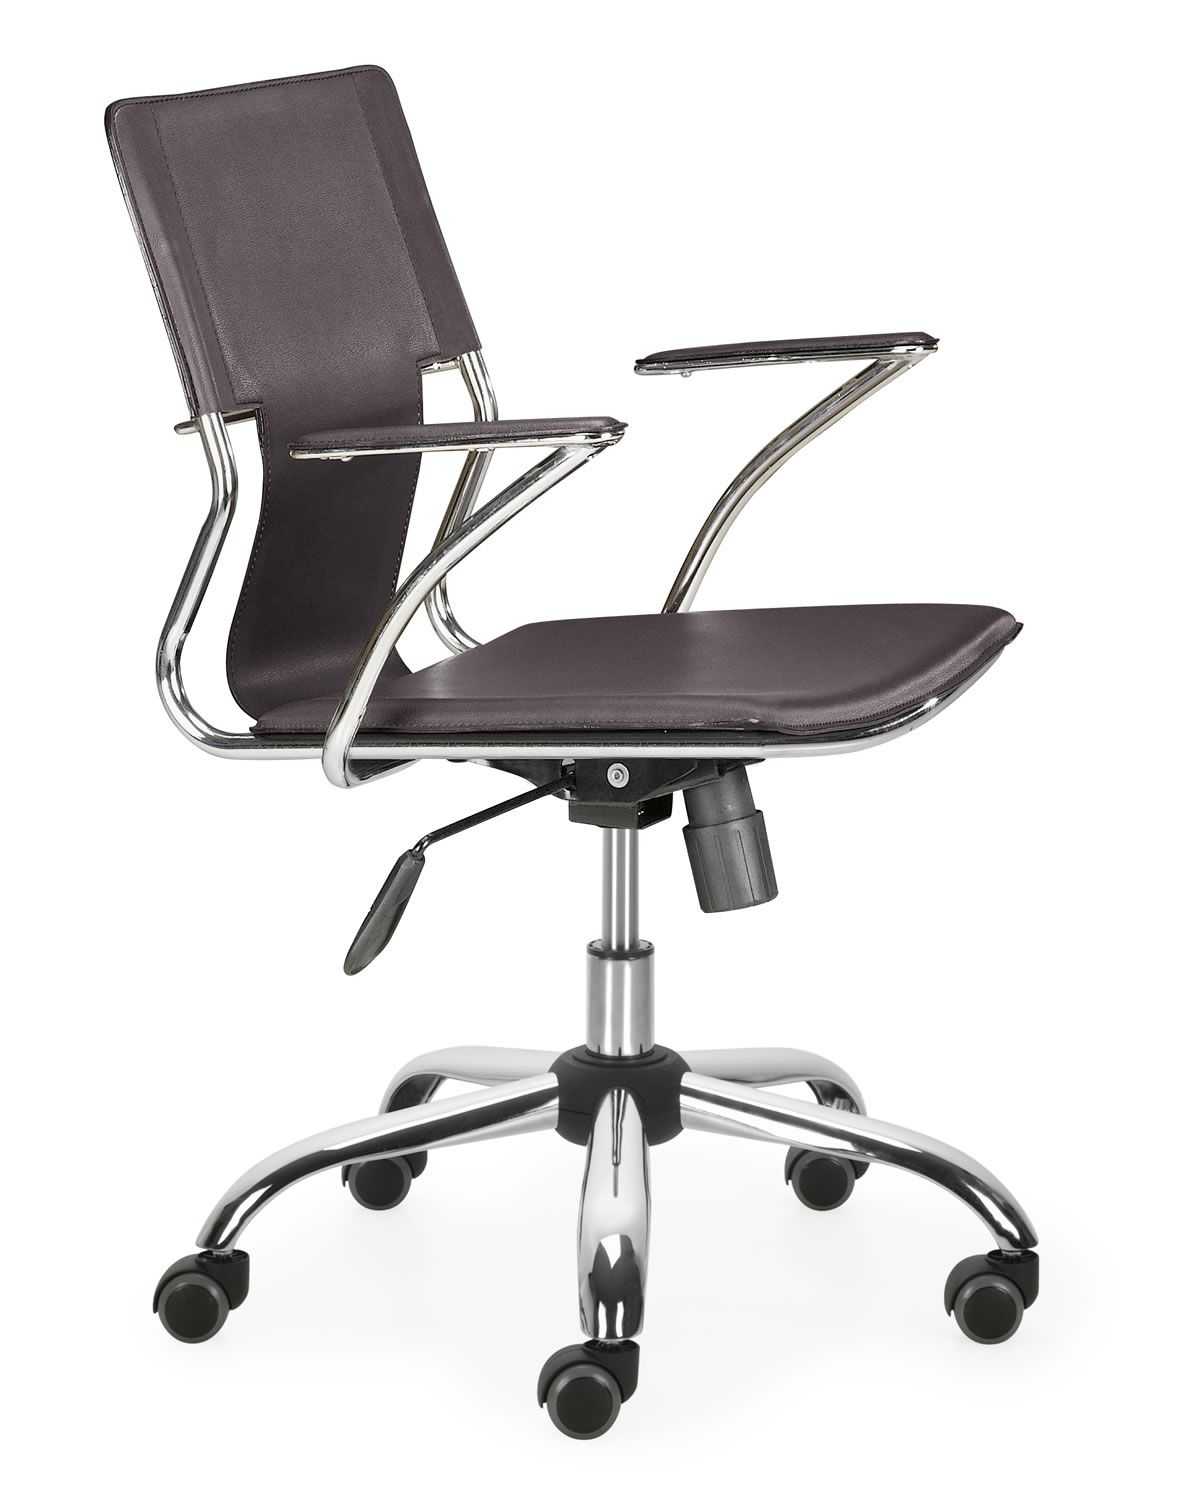 This fun and functional office chair combines a modern and transitional look. The Trafico office chair is made from solid steel chrome frame, leatherette sling seat and arm pads, with a chrome base with adjustable height.